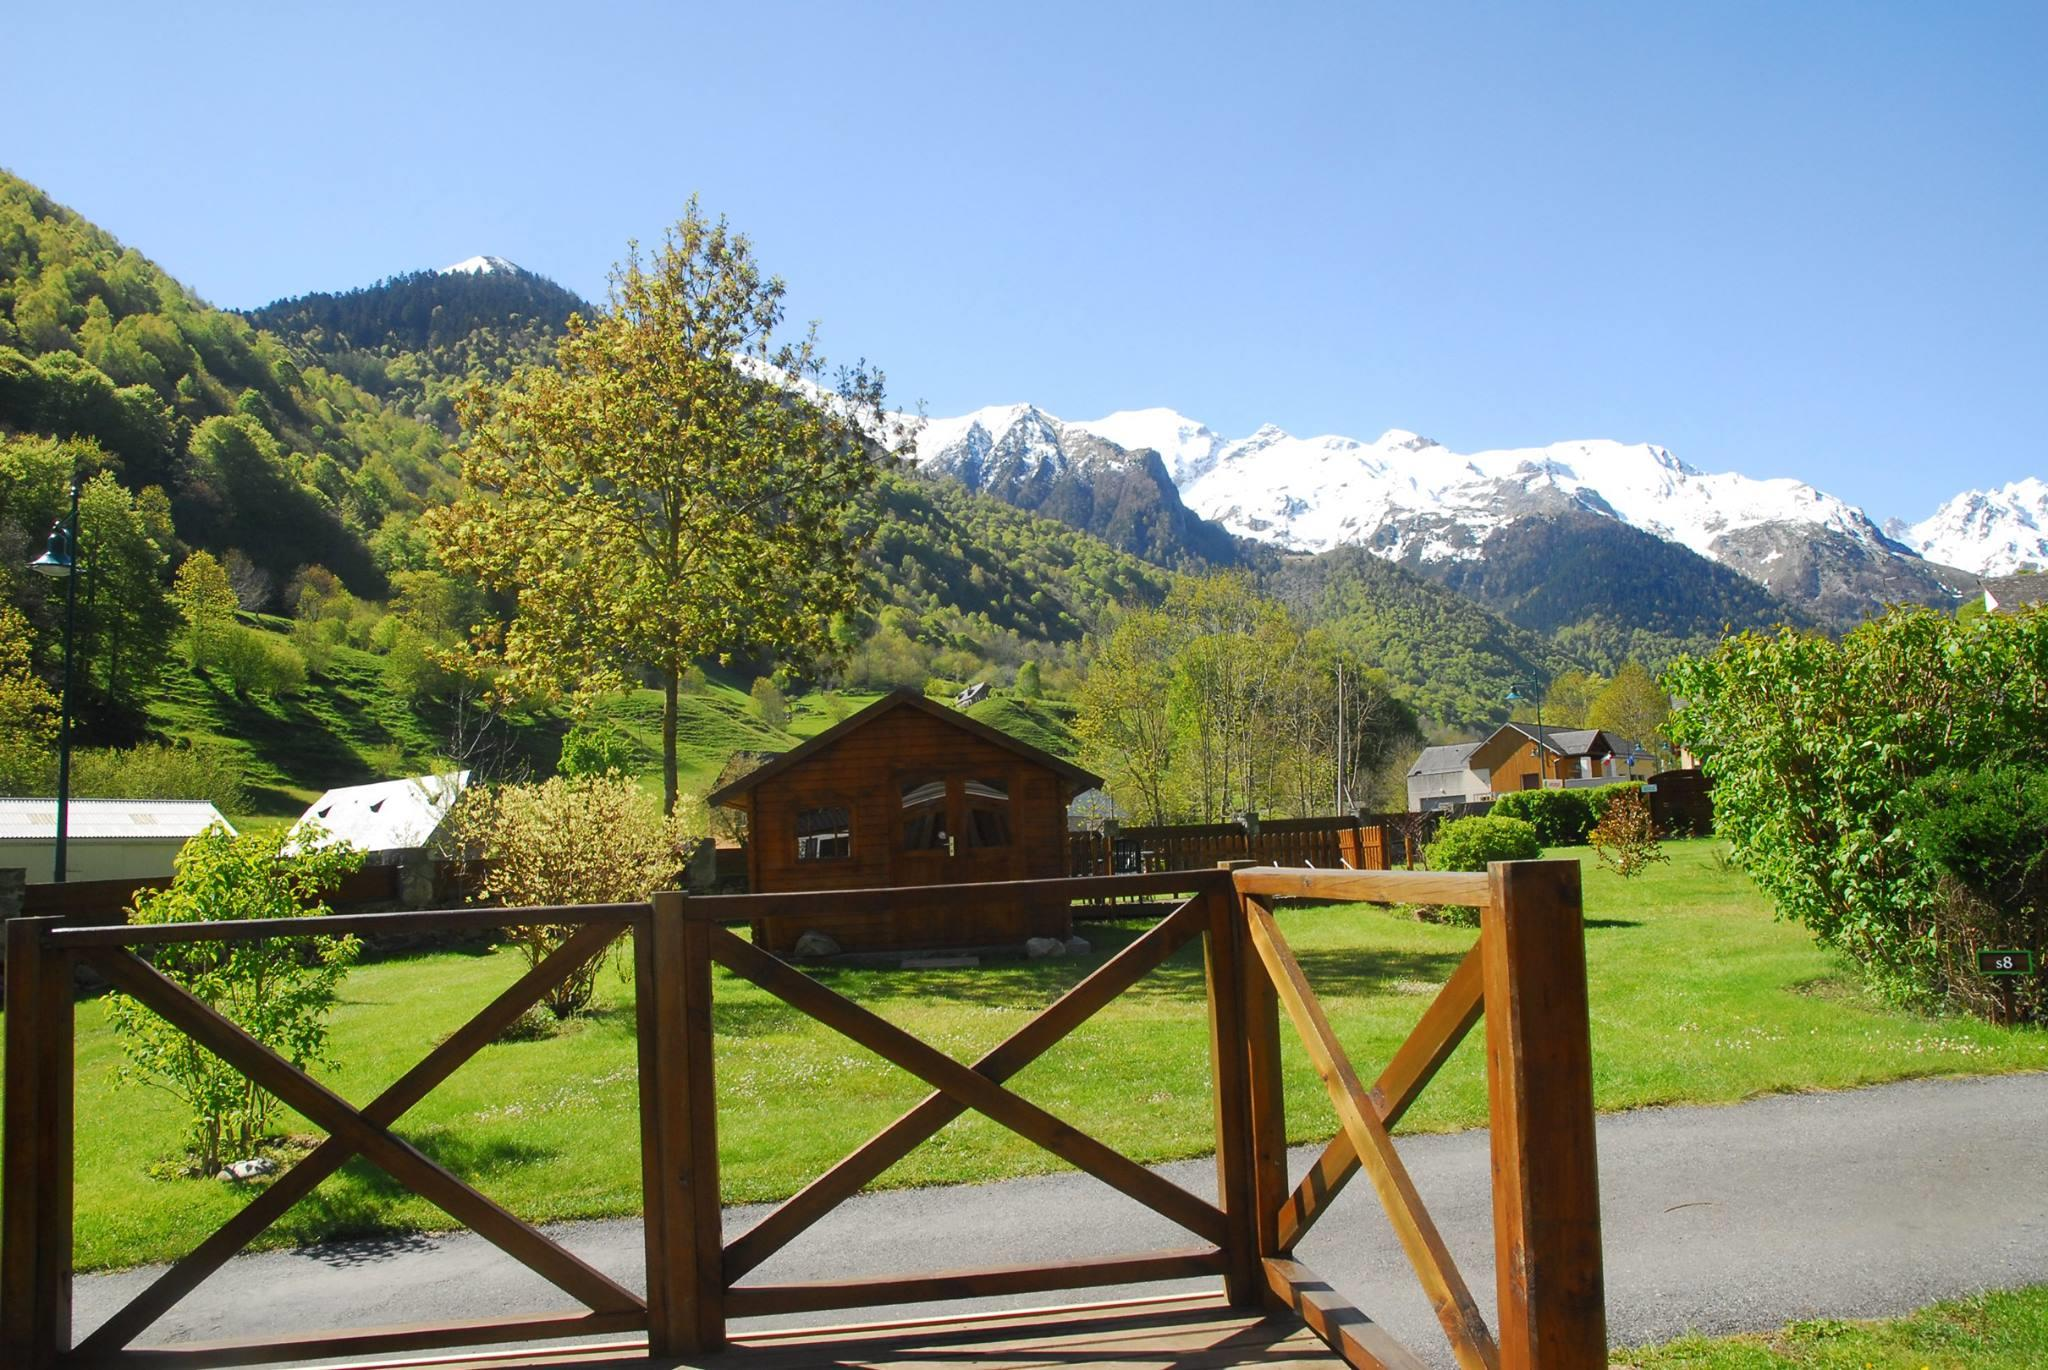 Establishment Camping PYRENEES NATURA - ESTAING